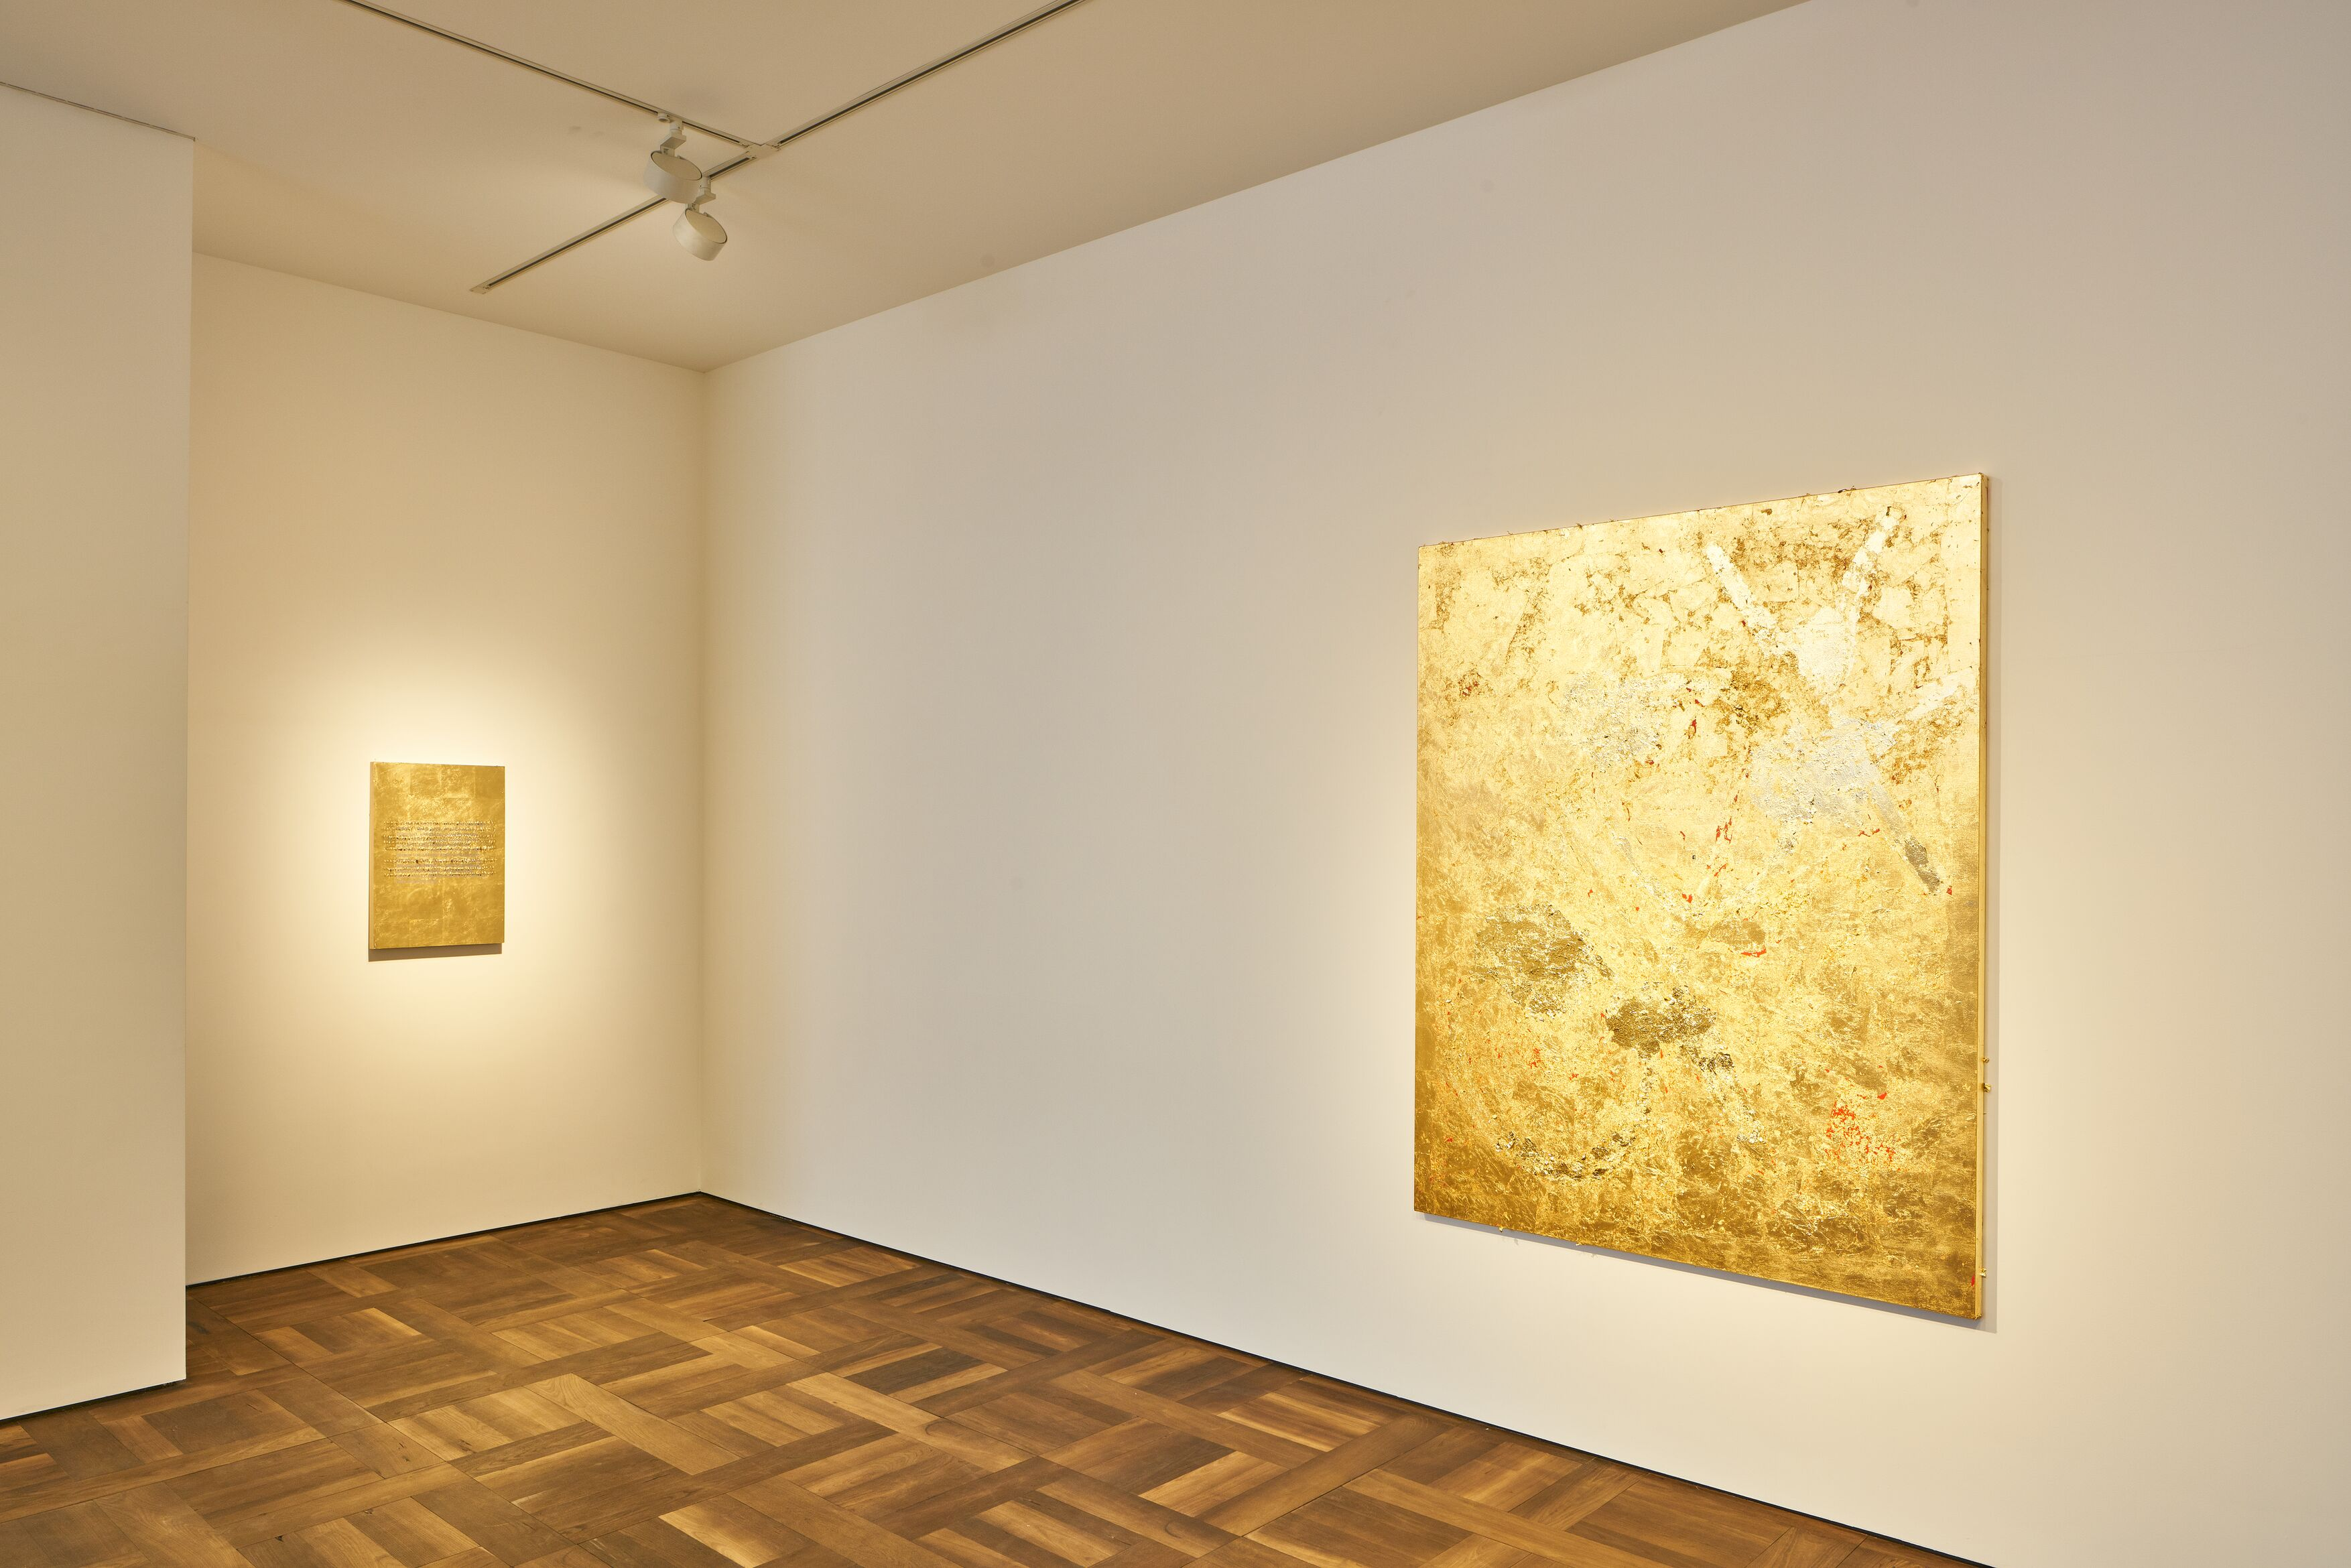 "Vue de l'exposition ""Stefan Brüggemann : UNTITLED ACTION (GOLD PAINTINGS)"", Hauser & Wirth, St. Moritz (2020) © Stefan Brüggemann. Courtesy the artist and Hauser & Wirth. Photo: Jon Etter"